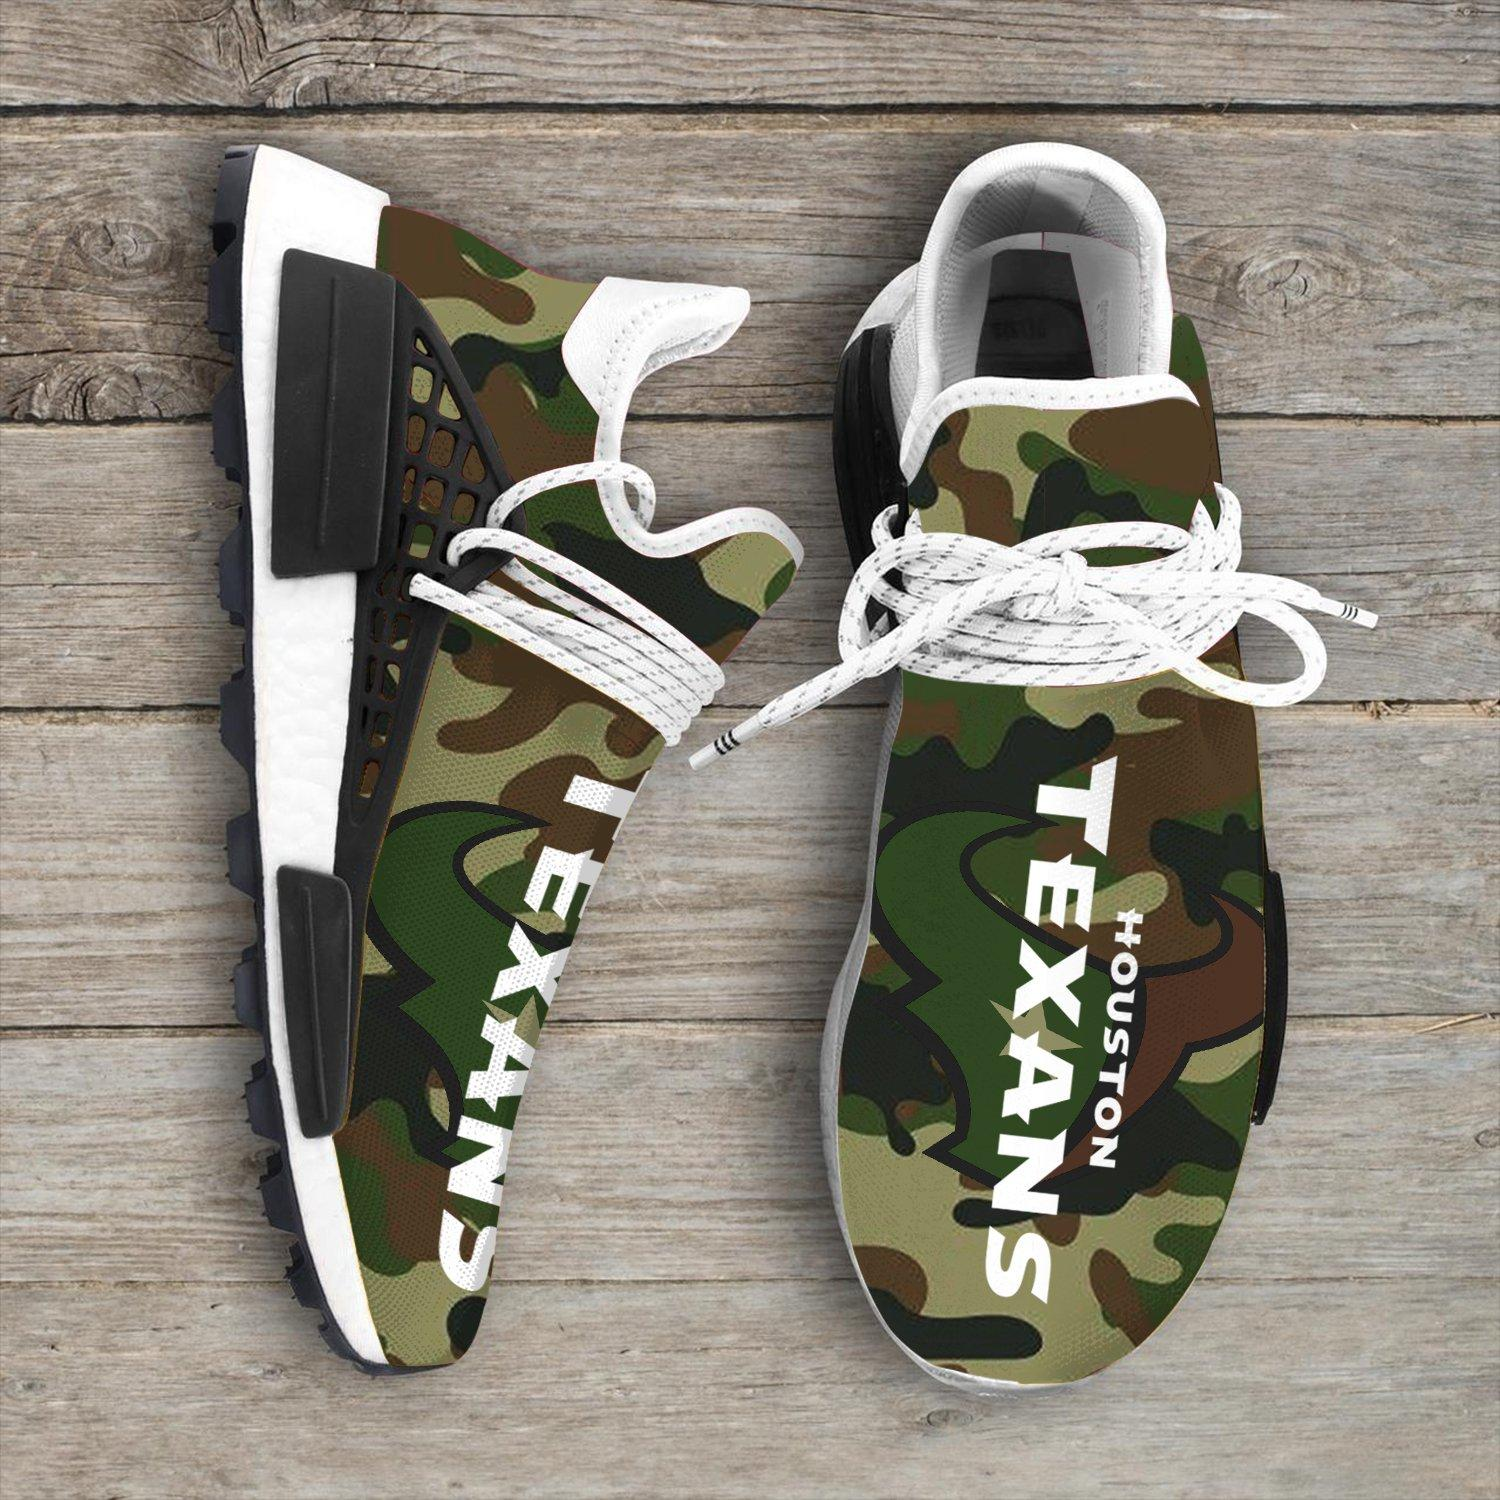 Camo Camouflage Houston Texans Nfl NMD Human Shoes